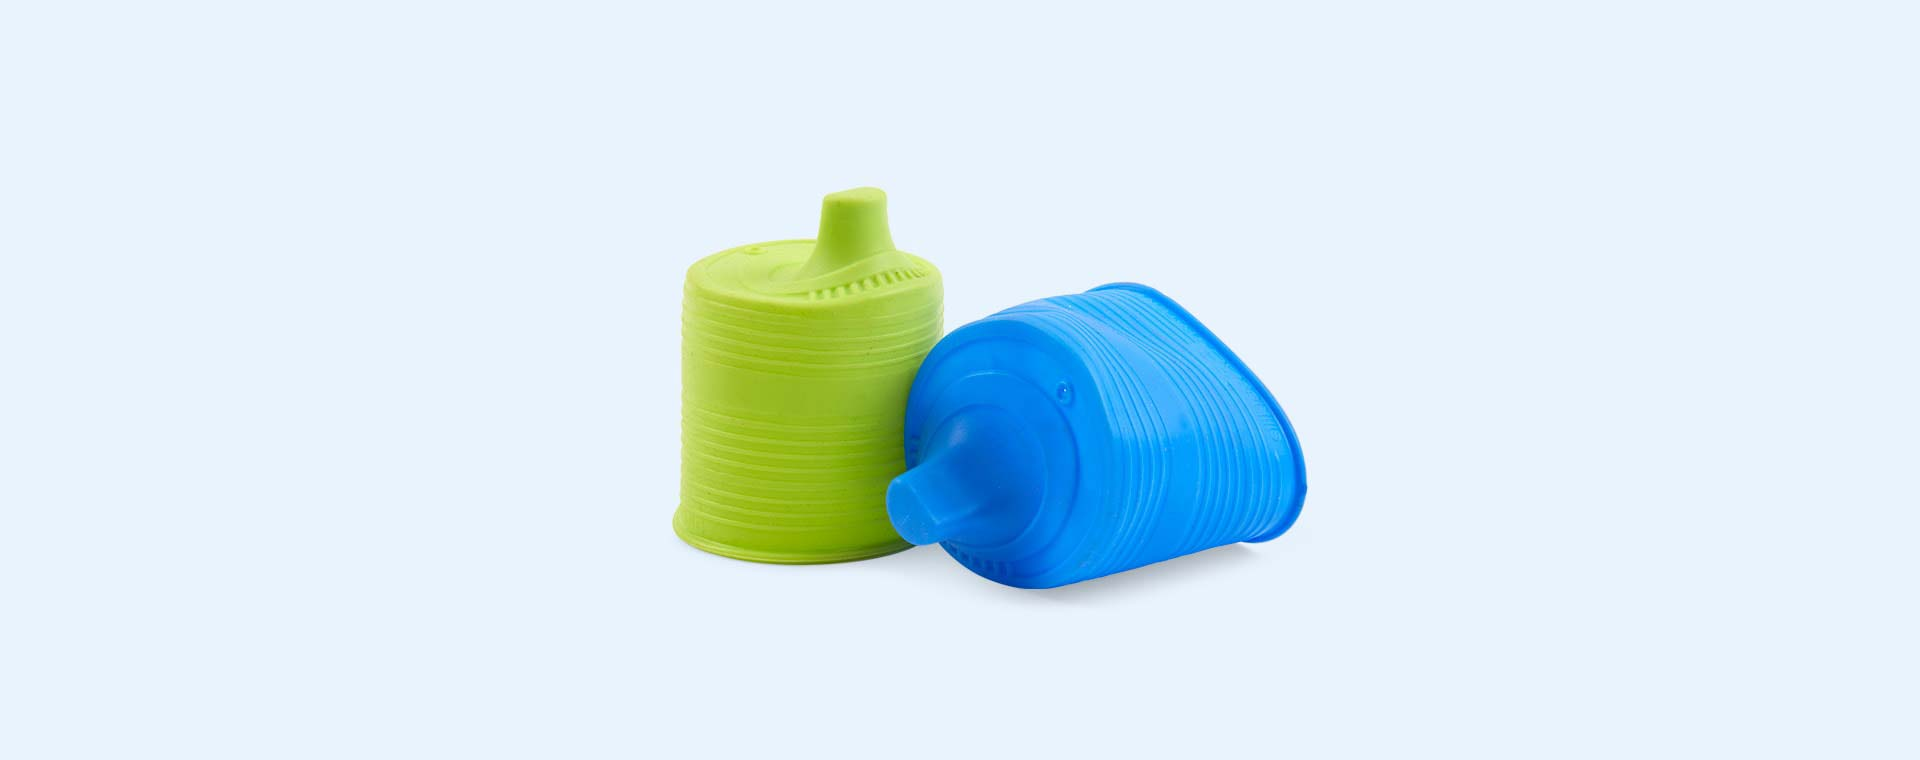 Green & Blue Go Sili Sippy Cup Toppers